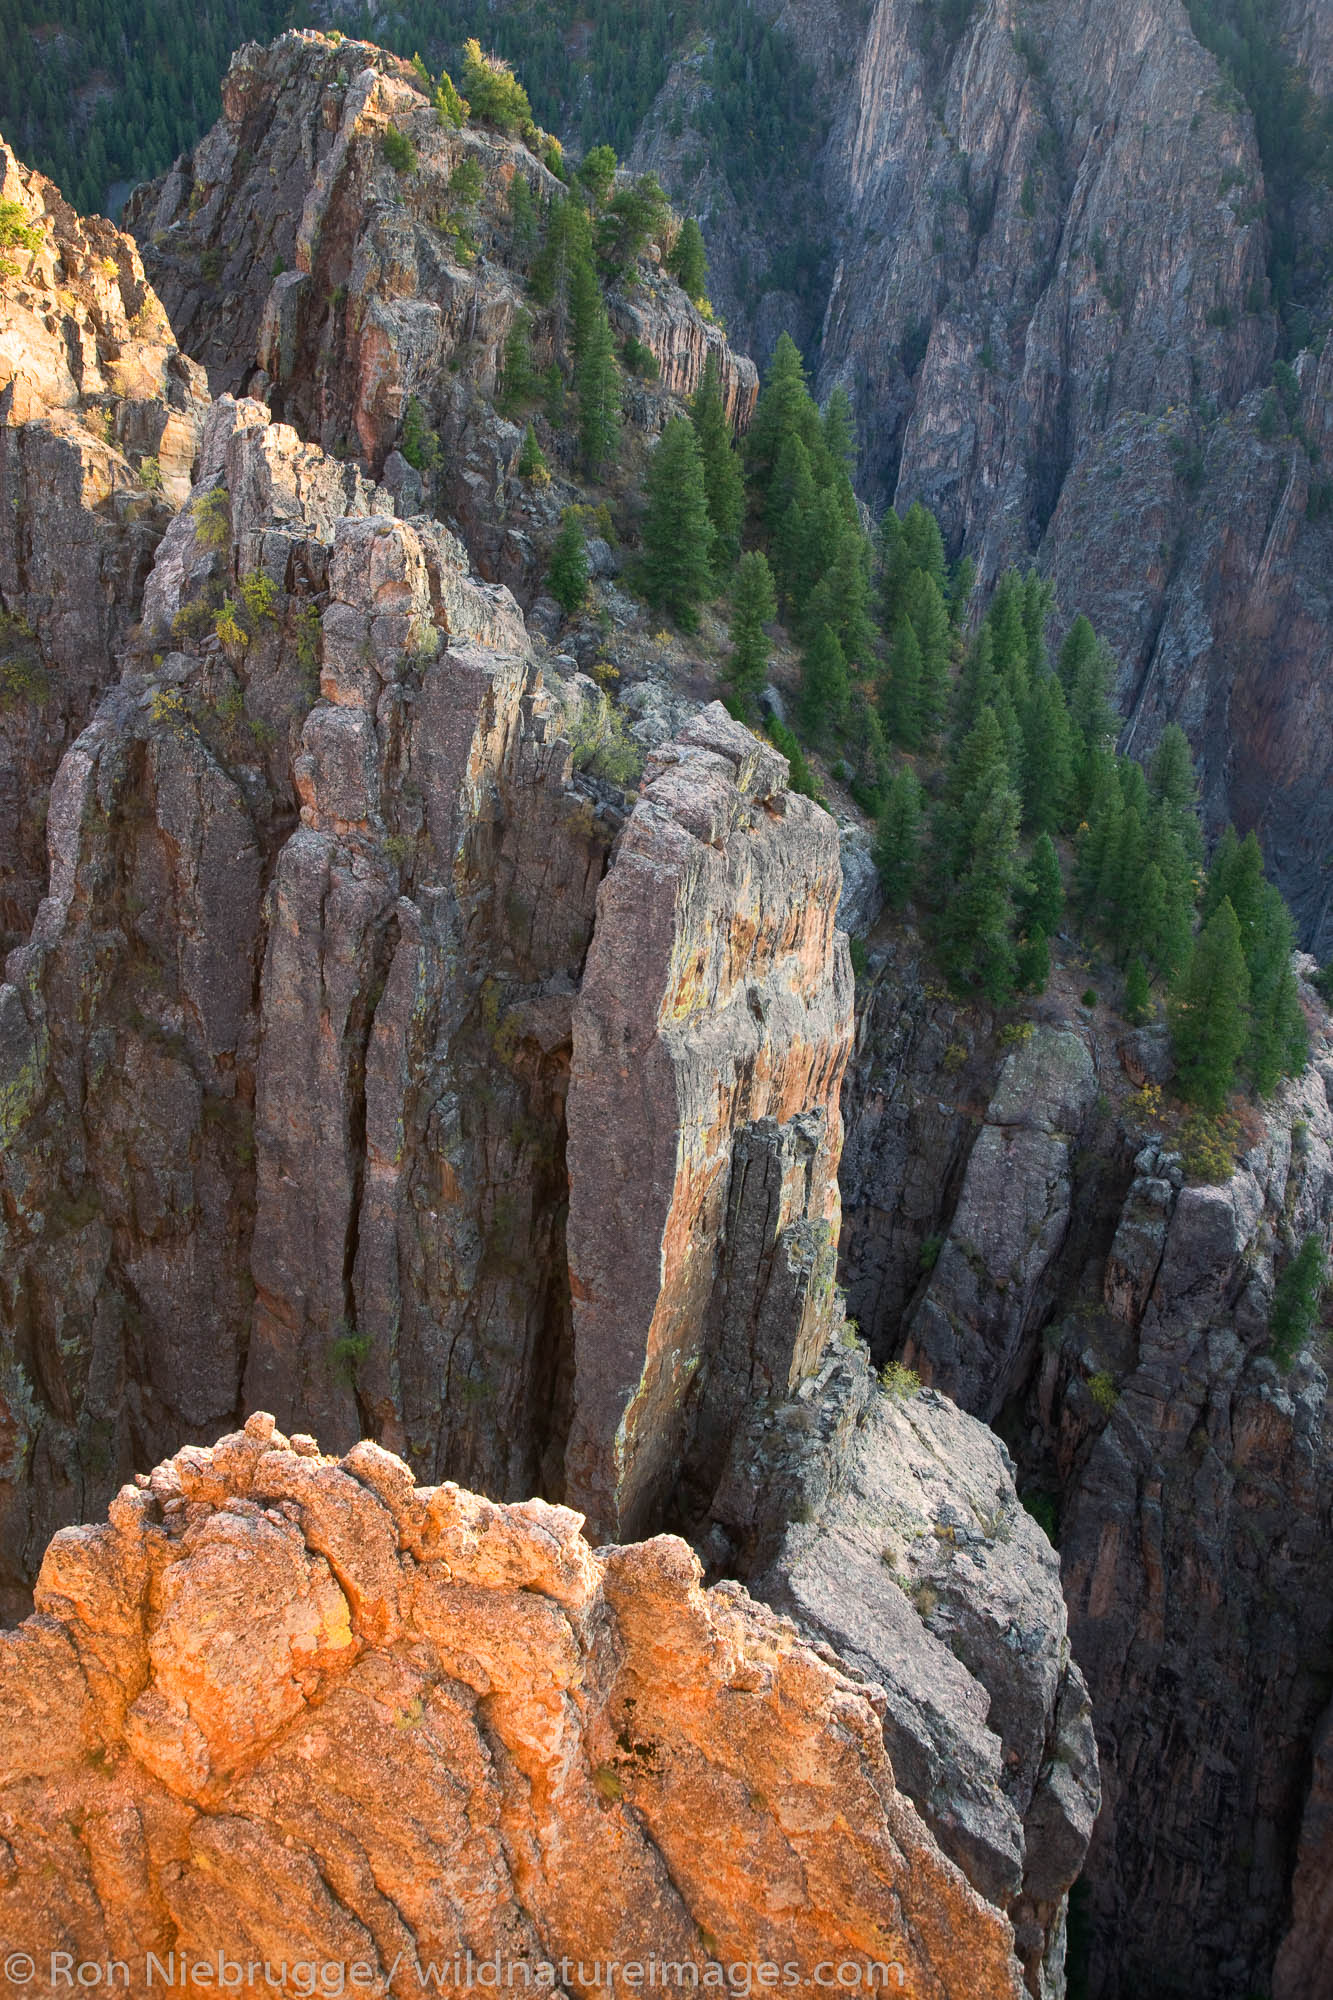 Viewpoint at Island Peaks View on the North Rim, Black Canyon of the Gunnison National Park, Colorado.